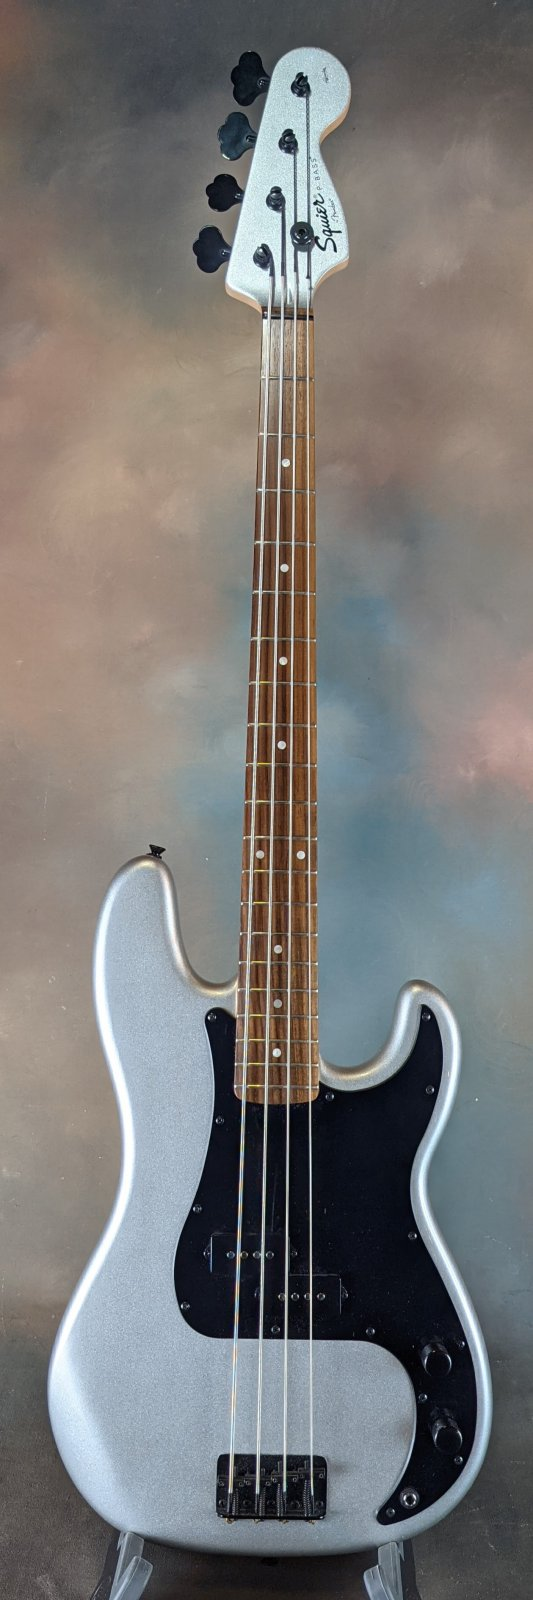 Used Squier Affinity P Bass - Limited Ed Black Hardware!